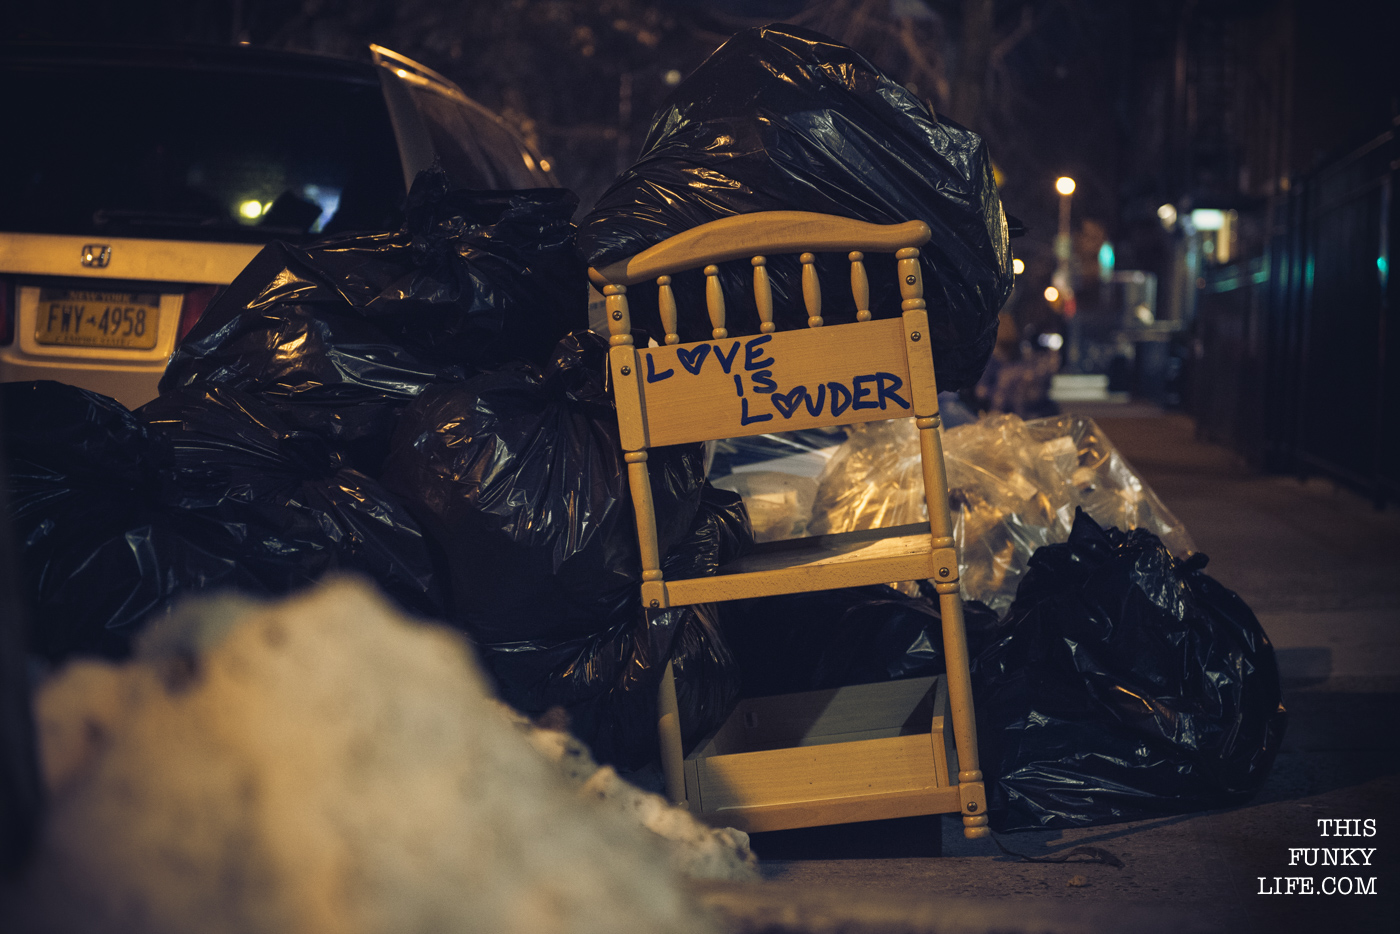 Love Is Louder, it said on a crib put into the dumpster